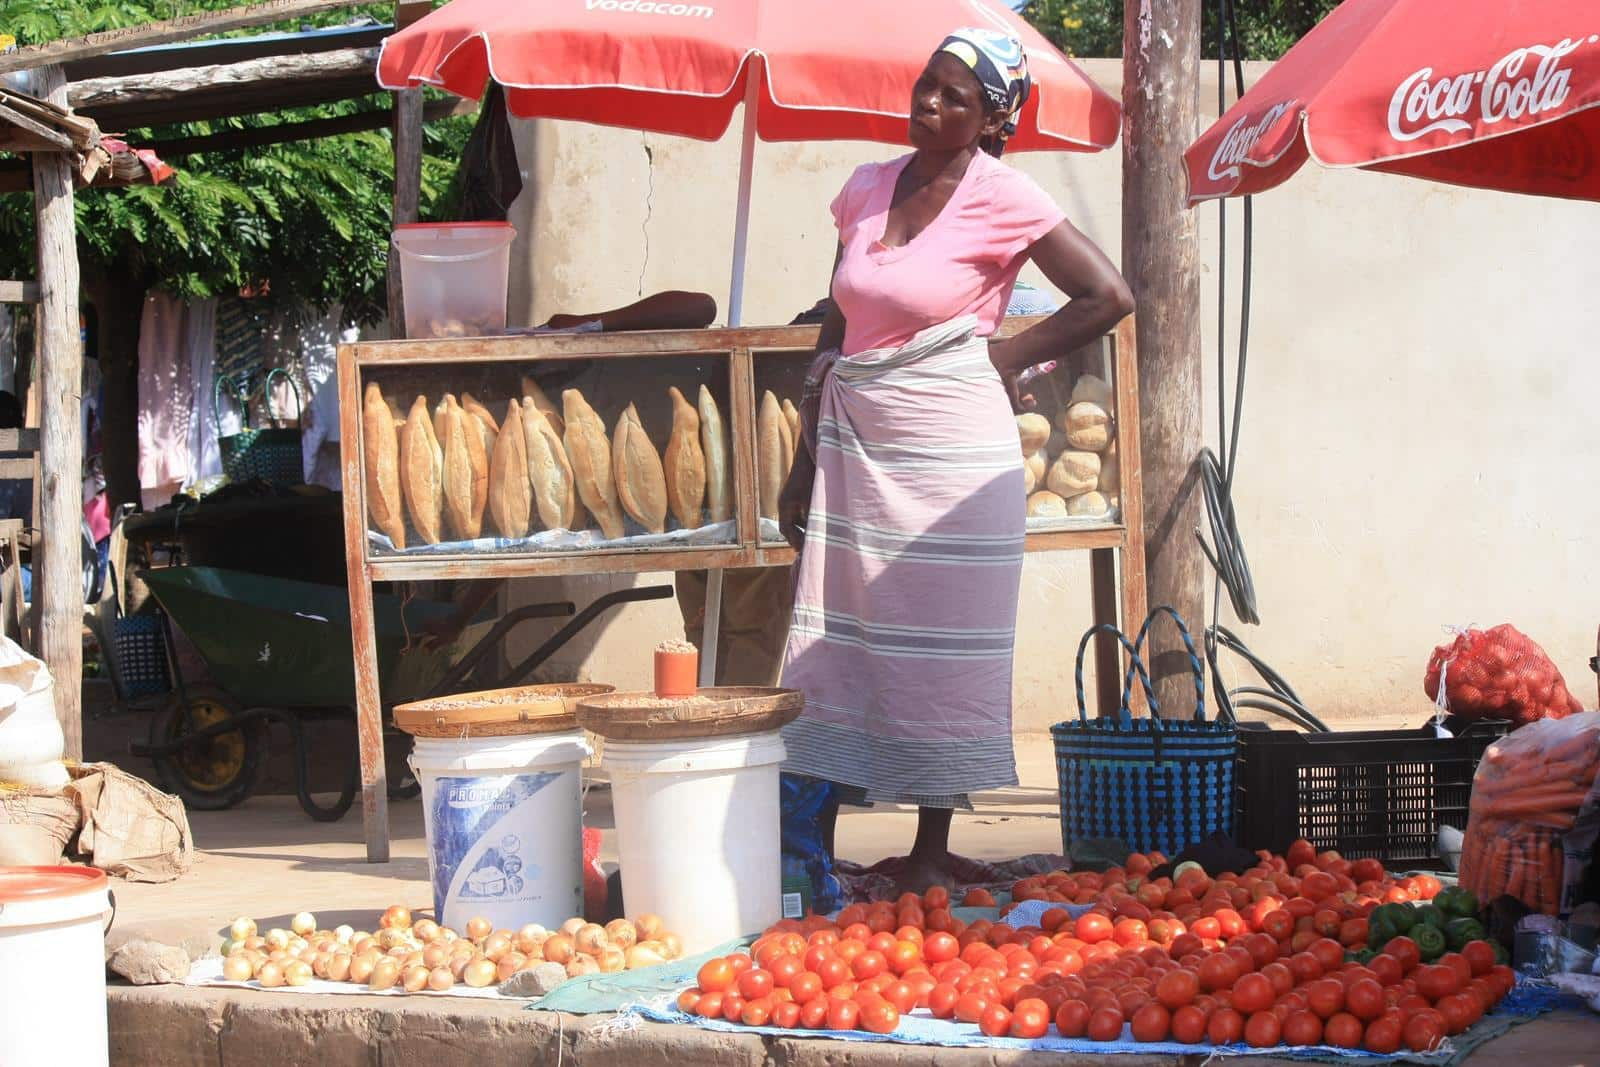 Women selling tomatoes and bread next to the road.